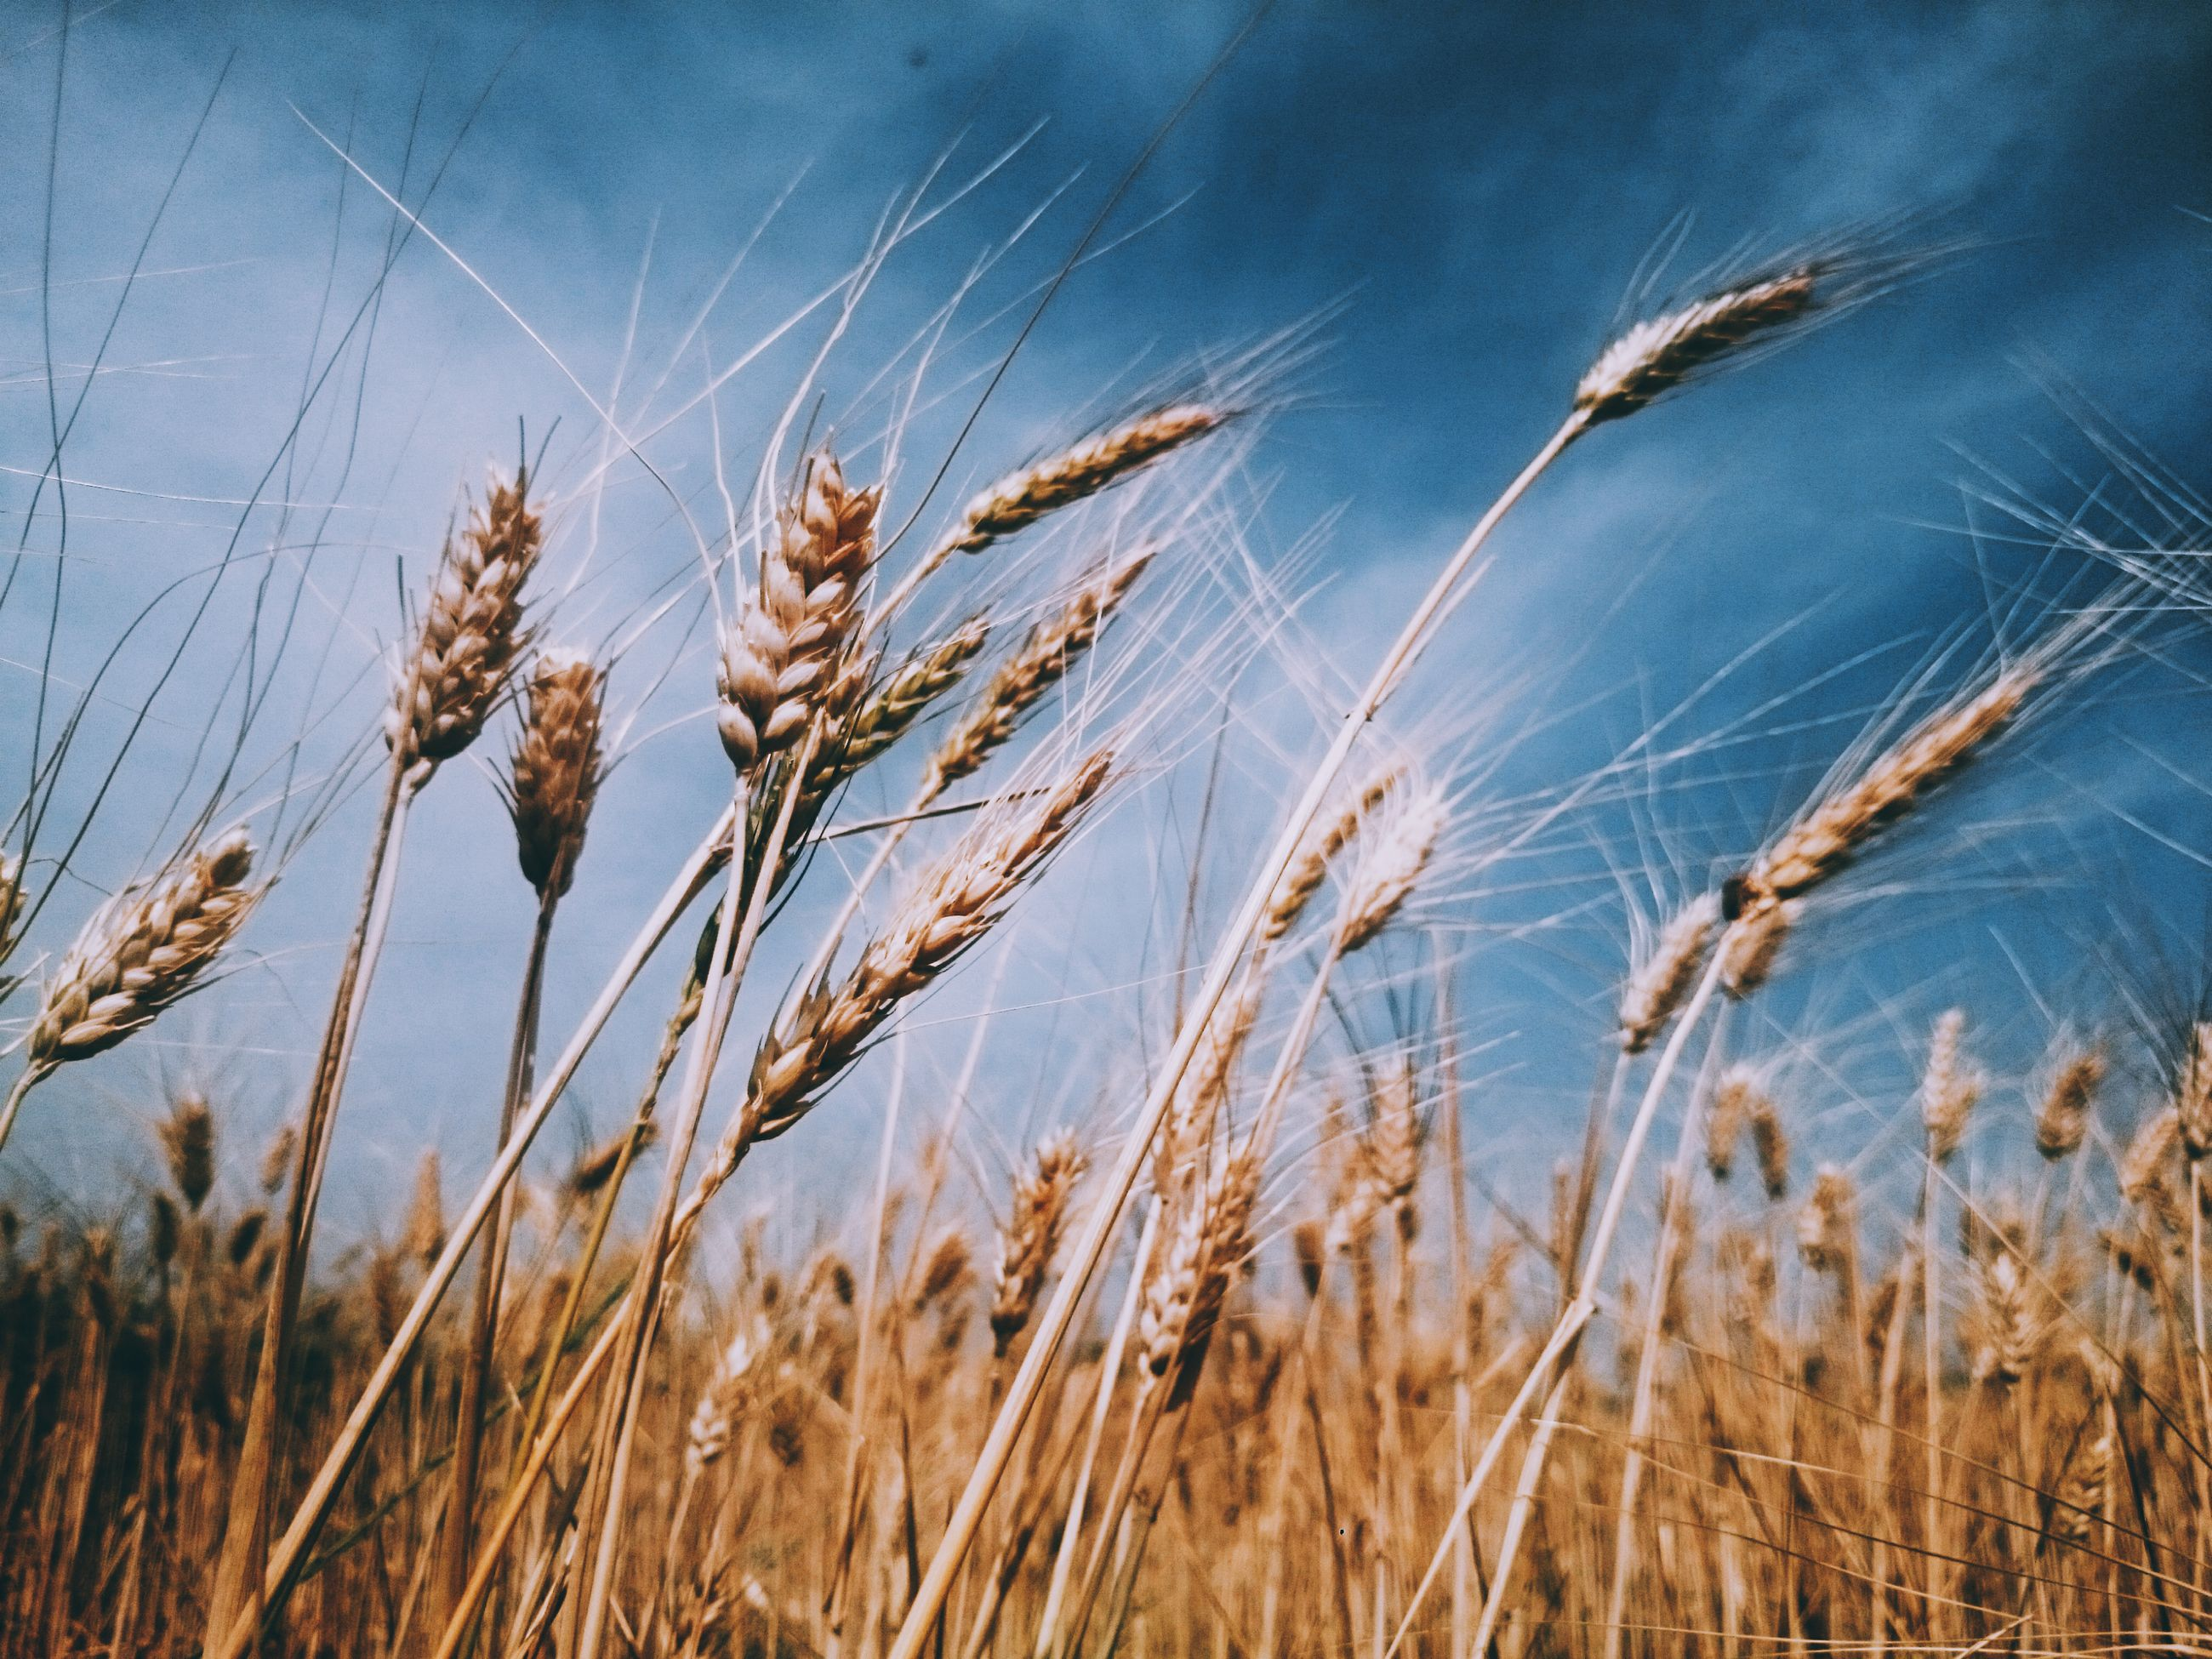 growth, nature, plant, crop, field, cereal plant, agriculture, wheat, no people, outdoors, tranquility, sky, close-up, day, beauty in nature